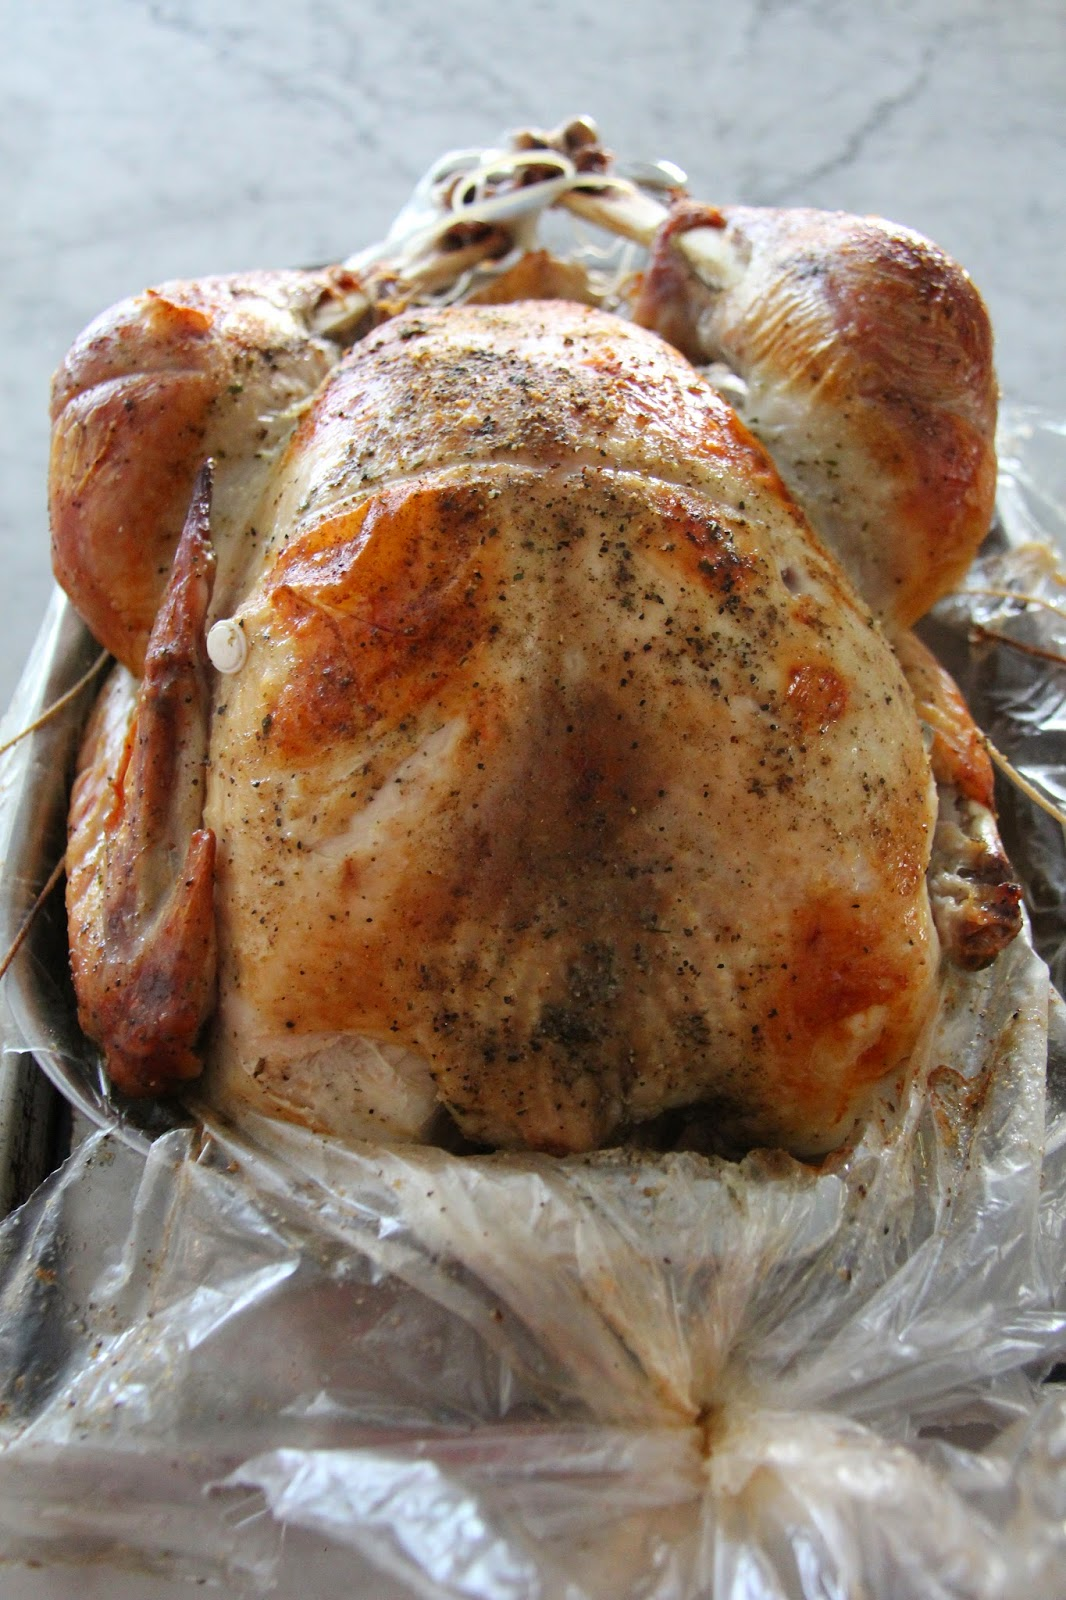 A Bountiful Kitchen: How to Roast a Turkey in a Bag